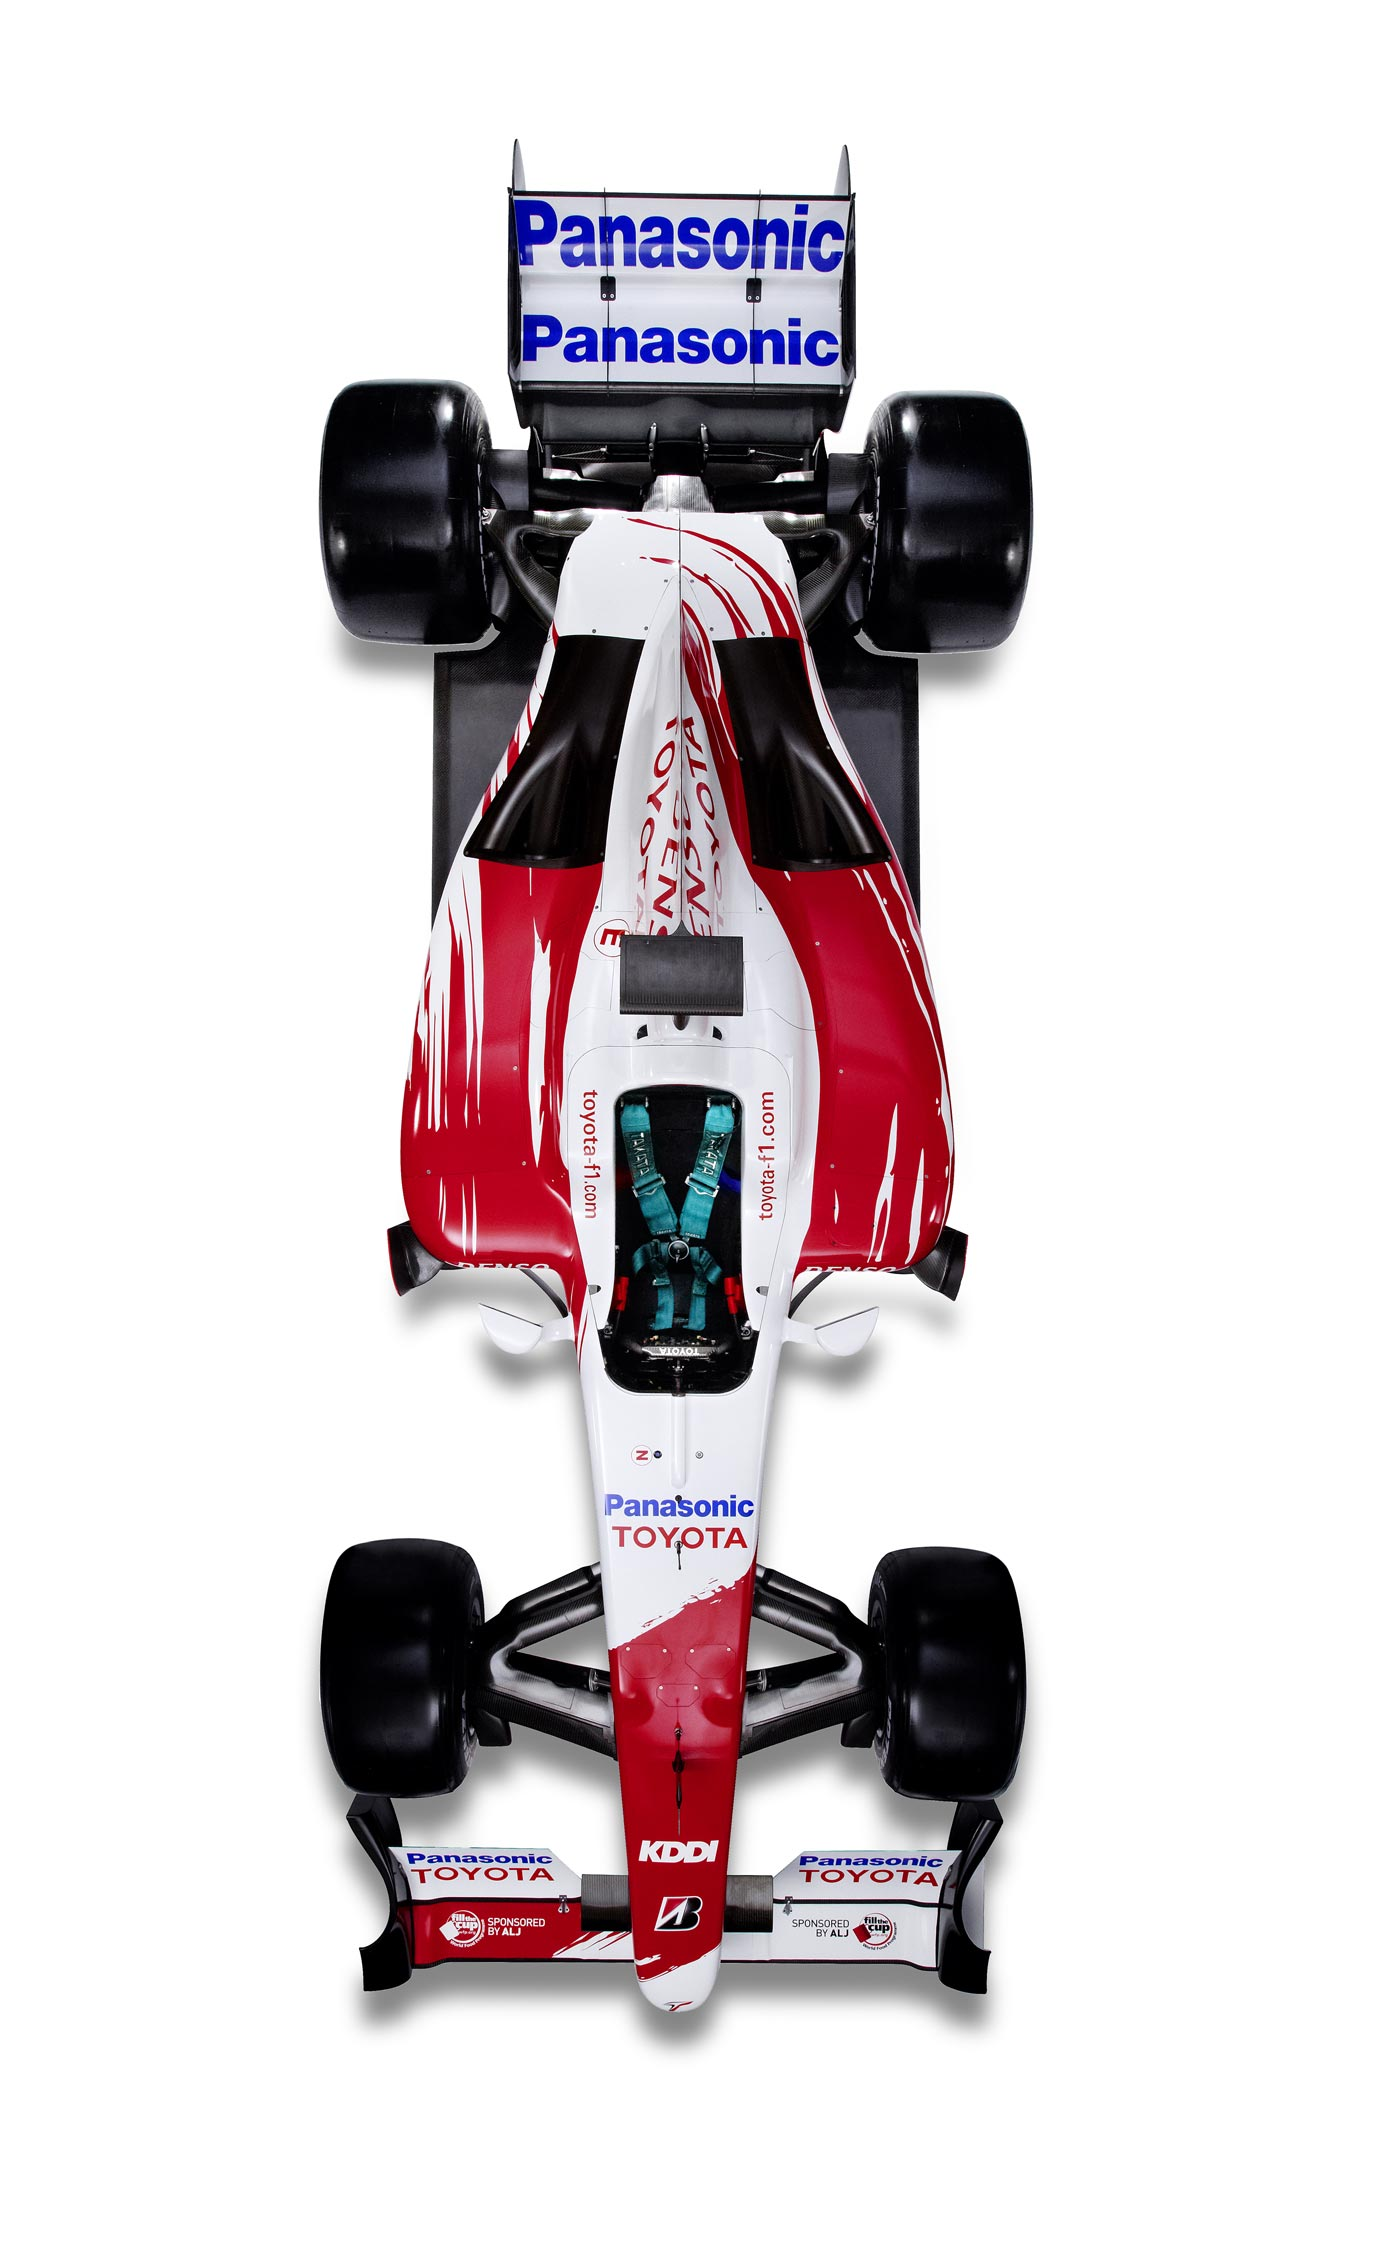 toyota_tf109_2009f1car-7.jpg